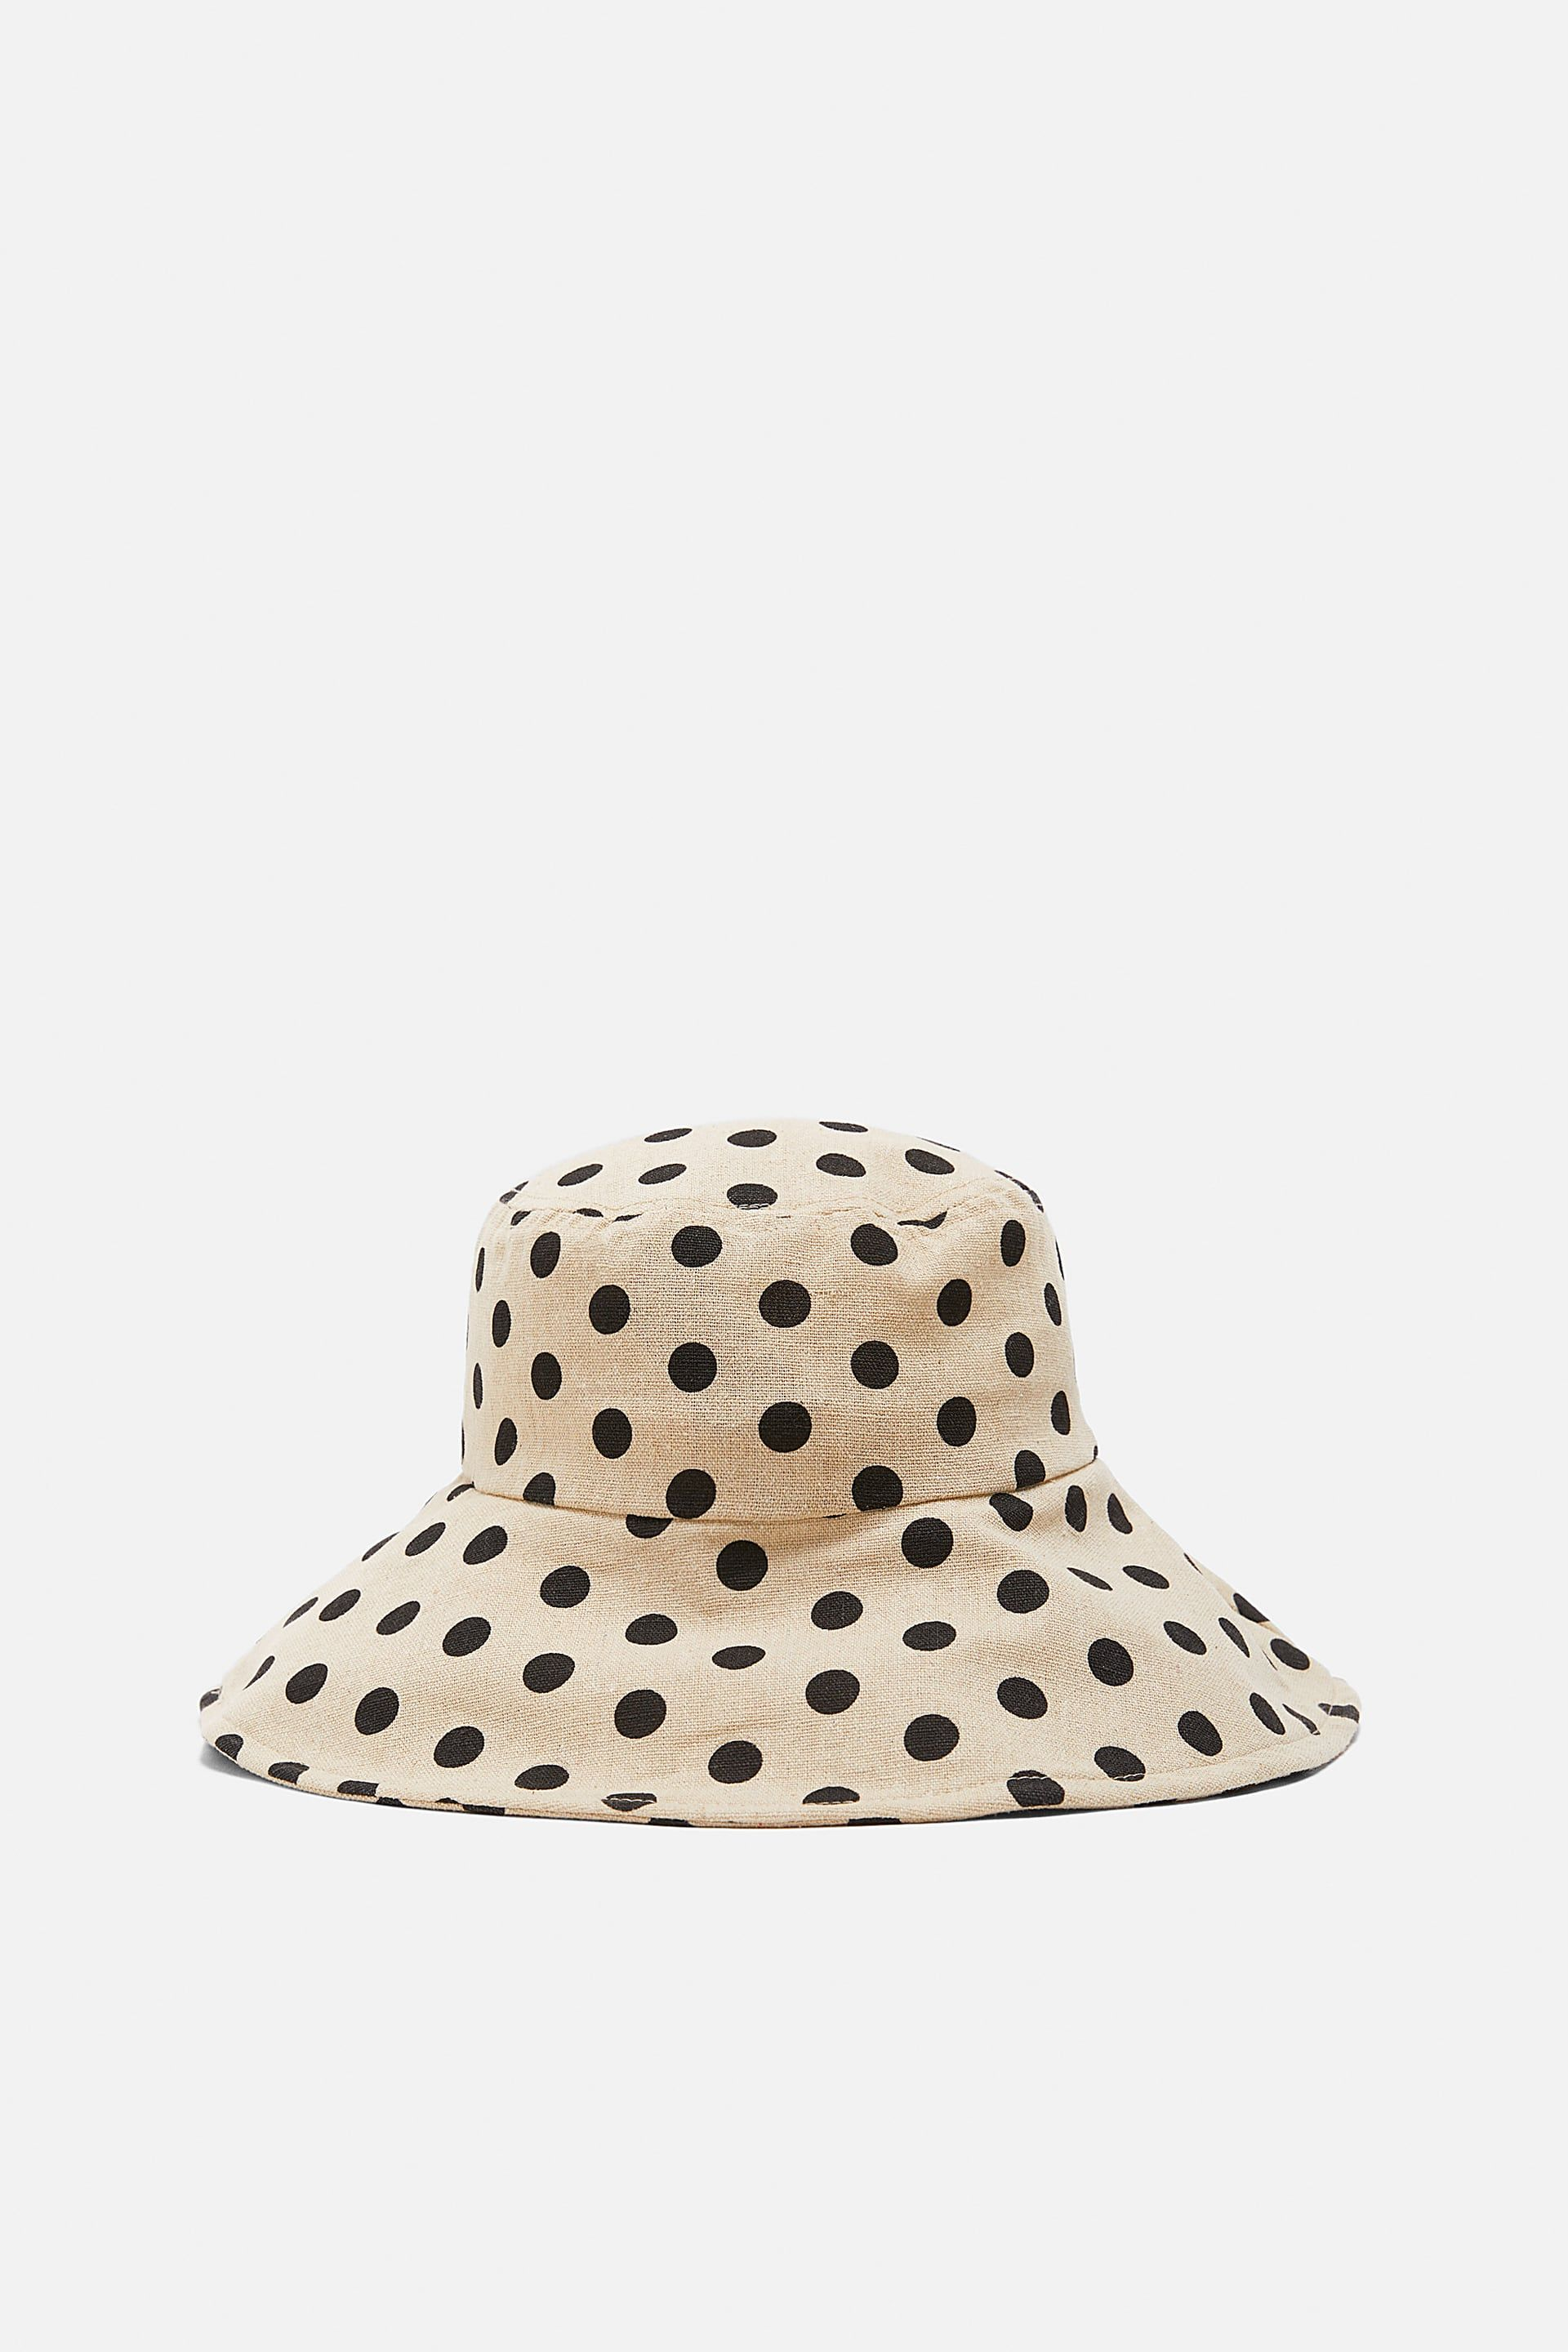 25cc76a10 Limited edition polka dot bucket hat in 2019 | Summer hats | Hats ...